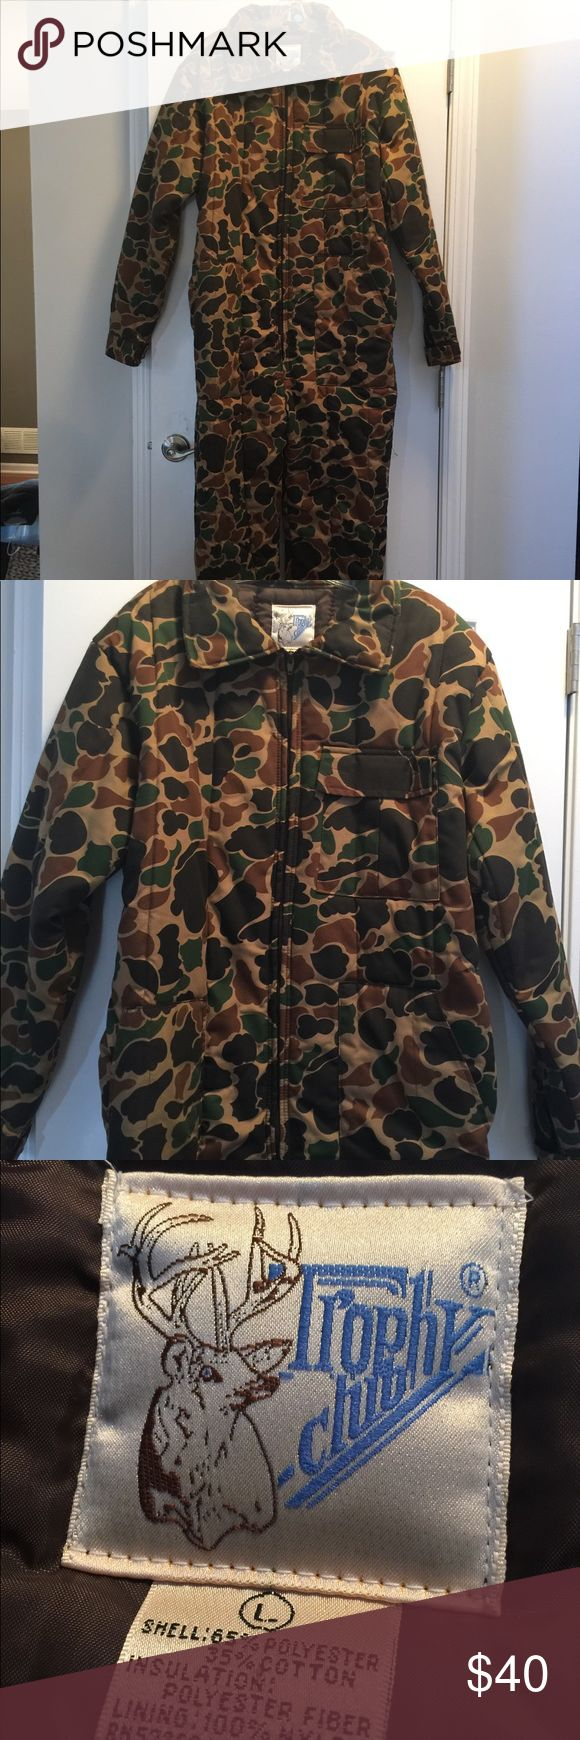 Trophy Club insulated coveralls In like new condition!  Insulated coveralls for work or fun in the cold. trophy club Other